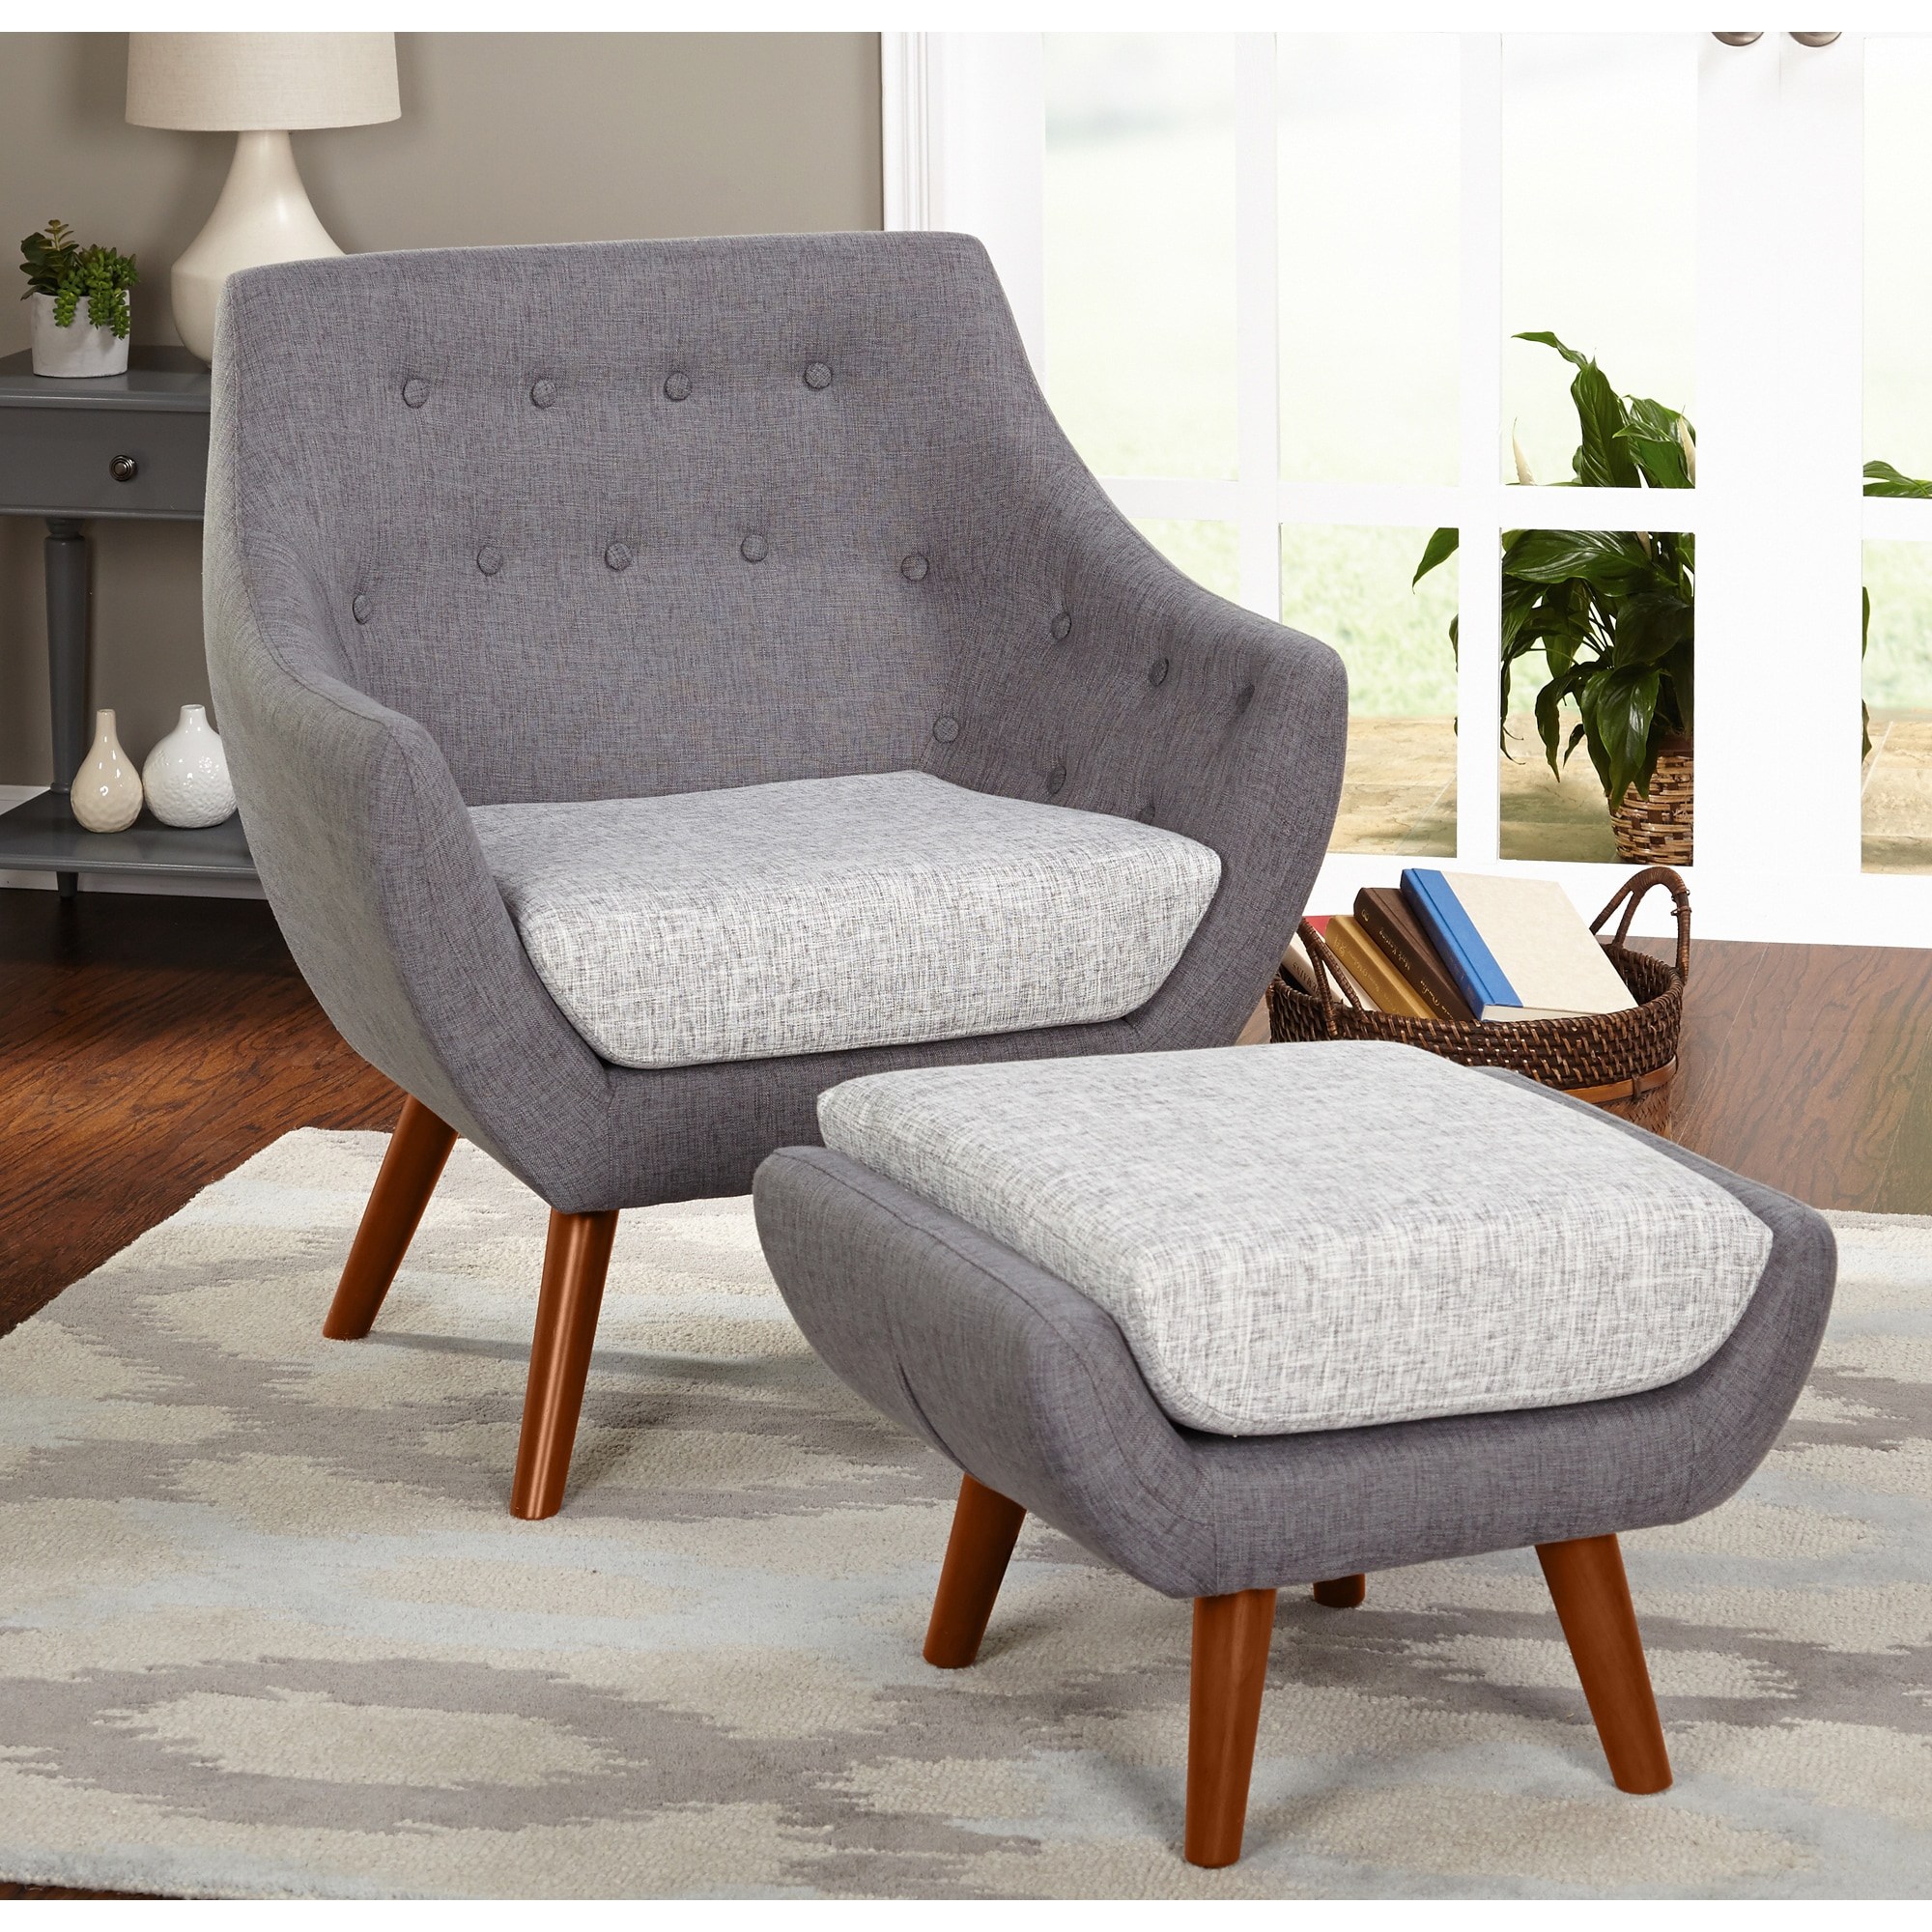 Chair And Ottoman Set Simple Living Elijah Mid Century Gray Chair And Ottoman Set